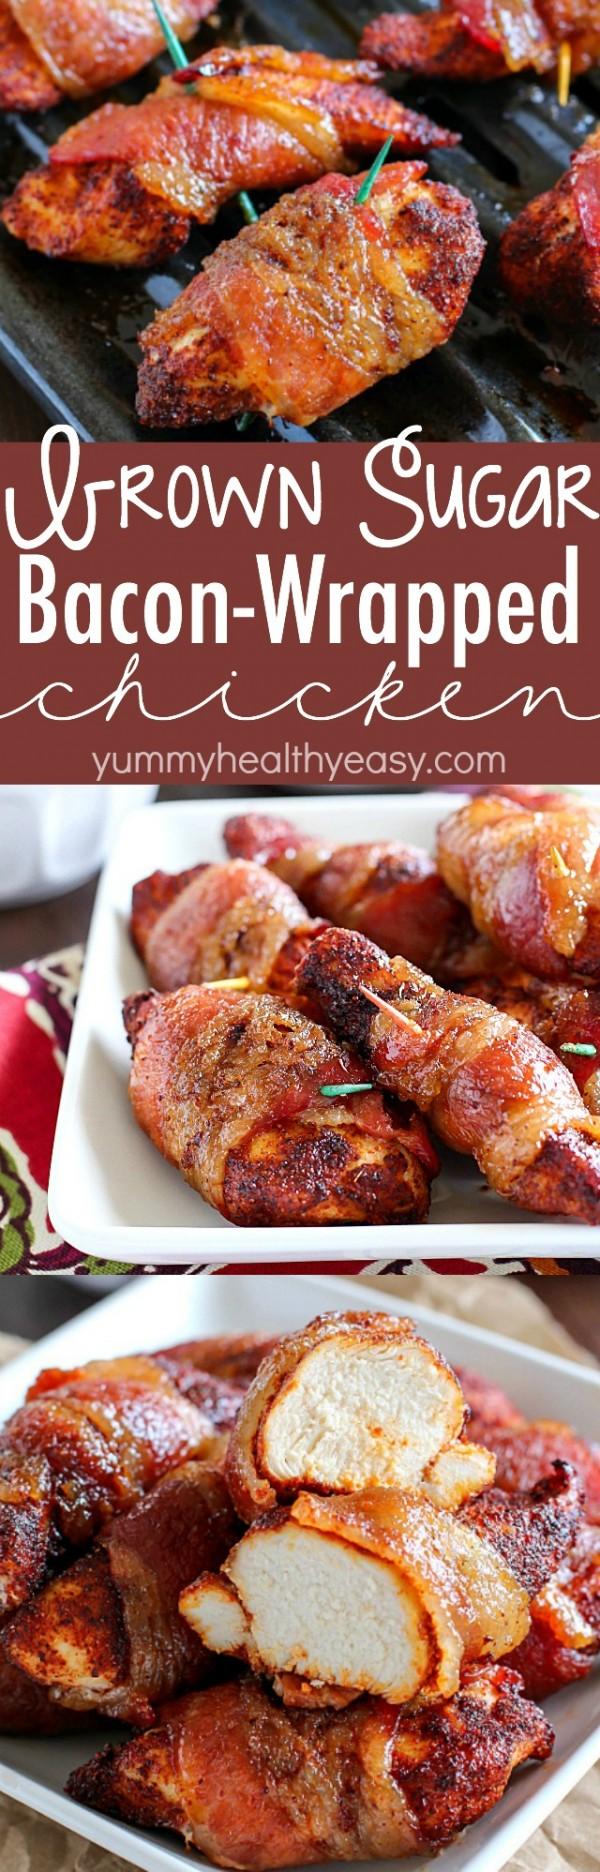 20 Unforgettable Chicken Recipes for a Romantic Dinner for Two - Get the recipe Brown Sugar Bacon Wrapped Chicken @recipes_to_go